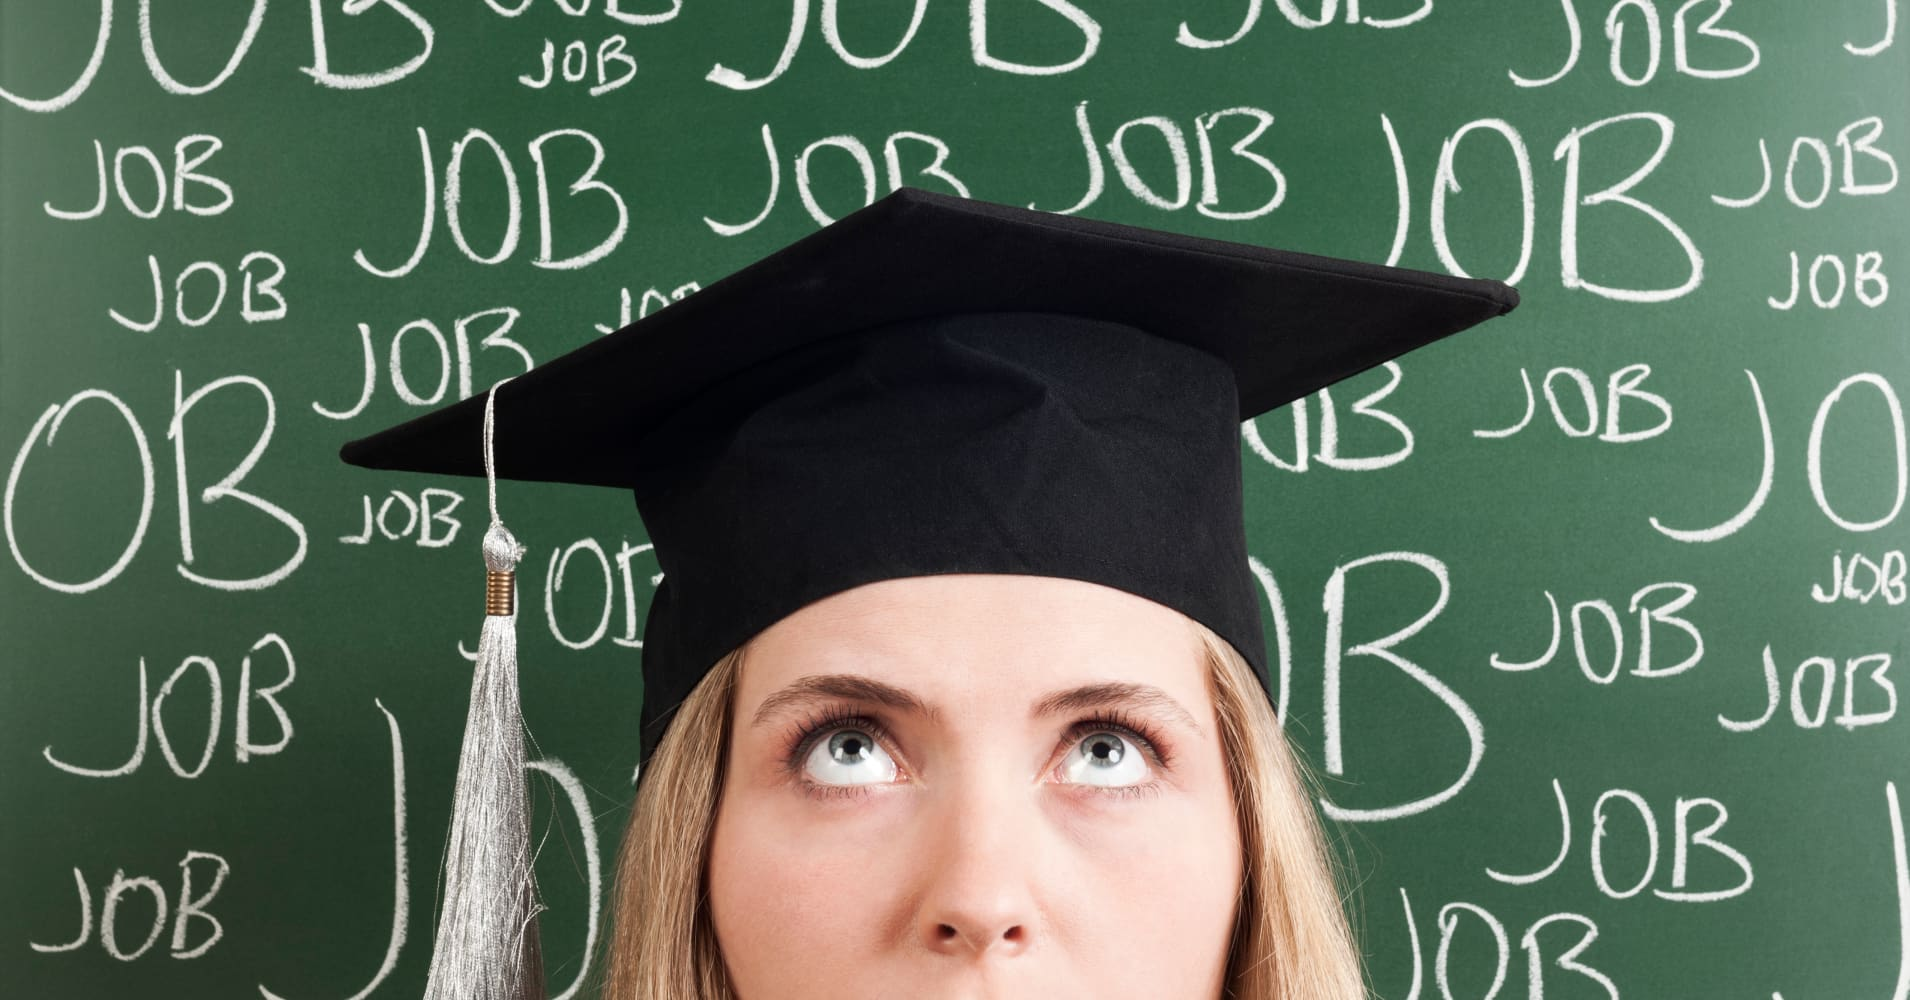 Where can you work with a psychology degree?